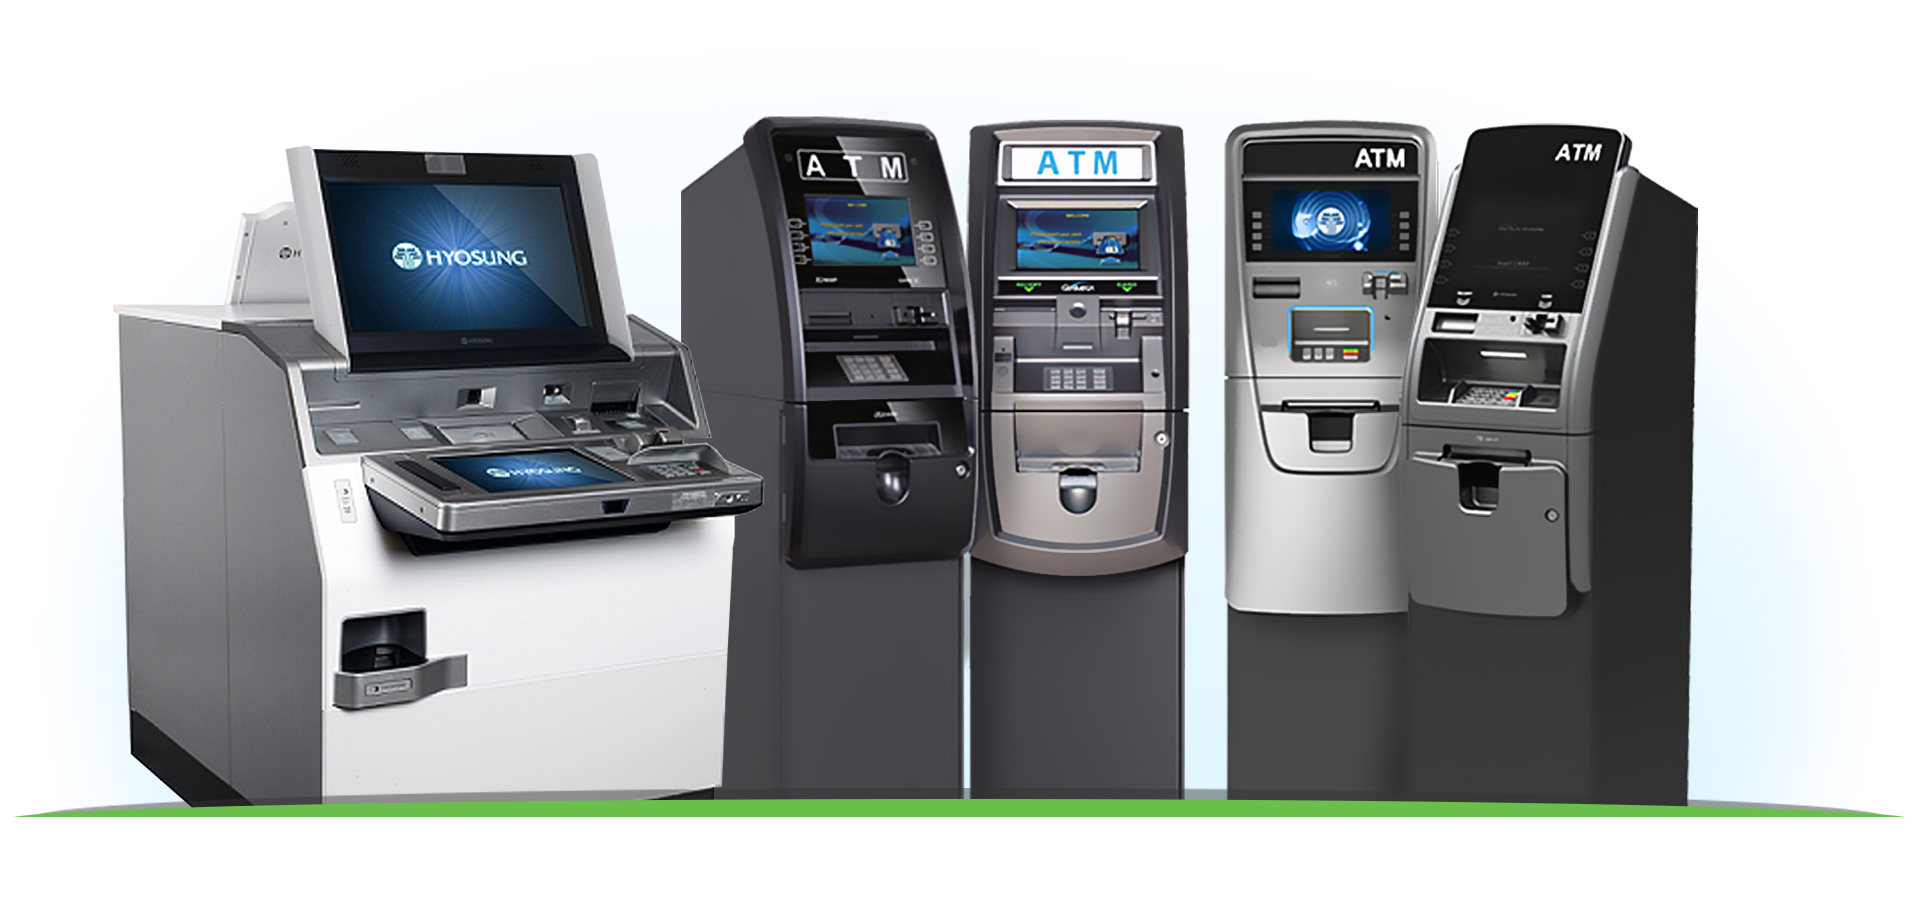 Complete ATM Managed Services Hyosung MX8800, HALO-II, Force ATMs, and Genmega ATMs